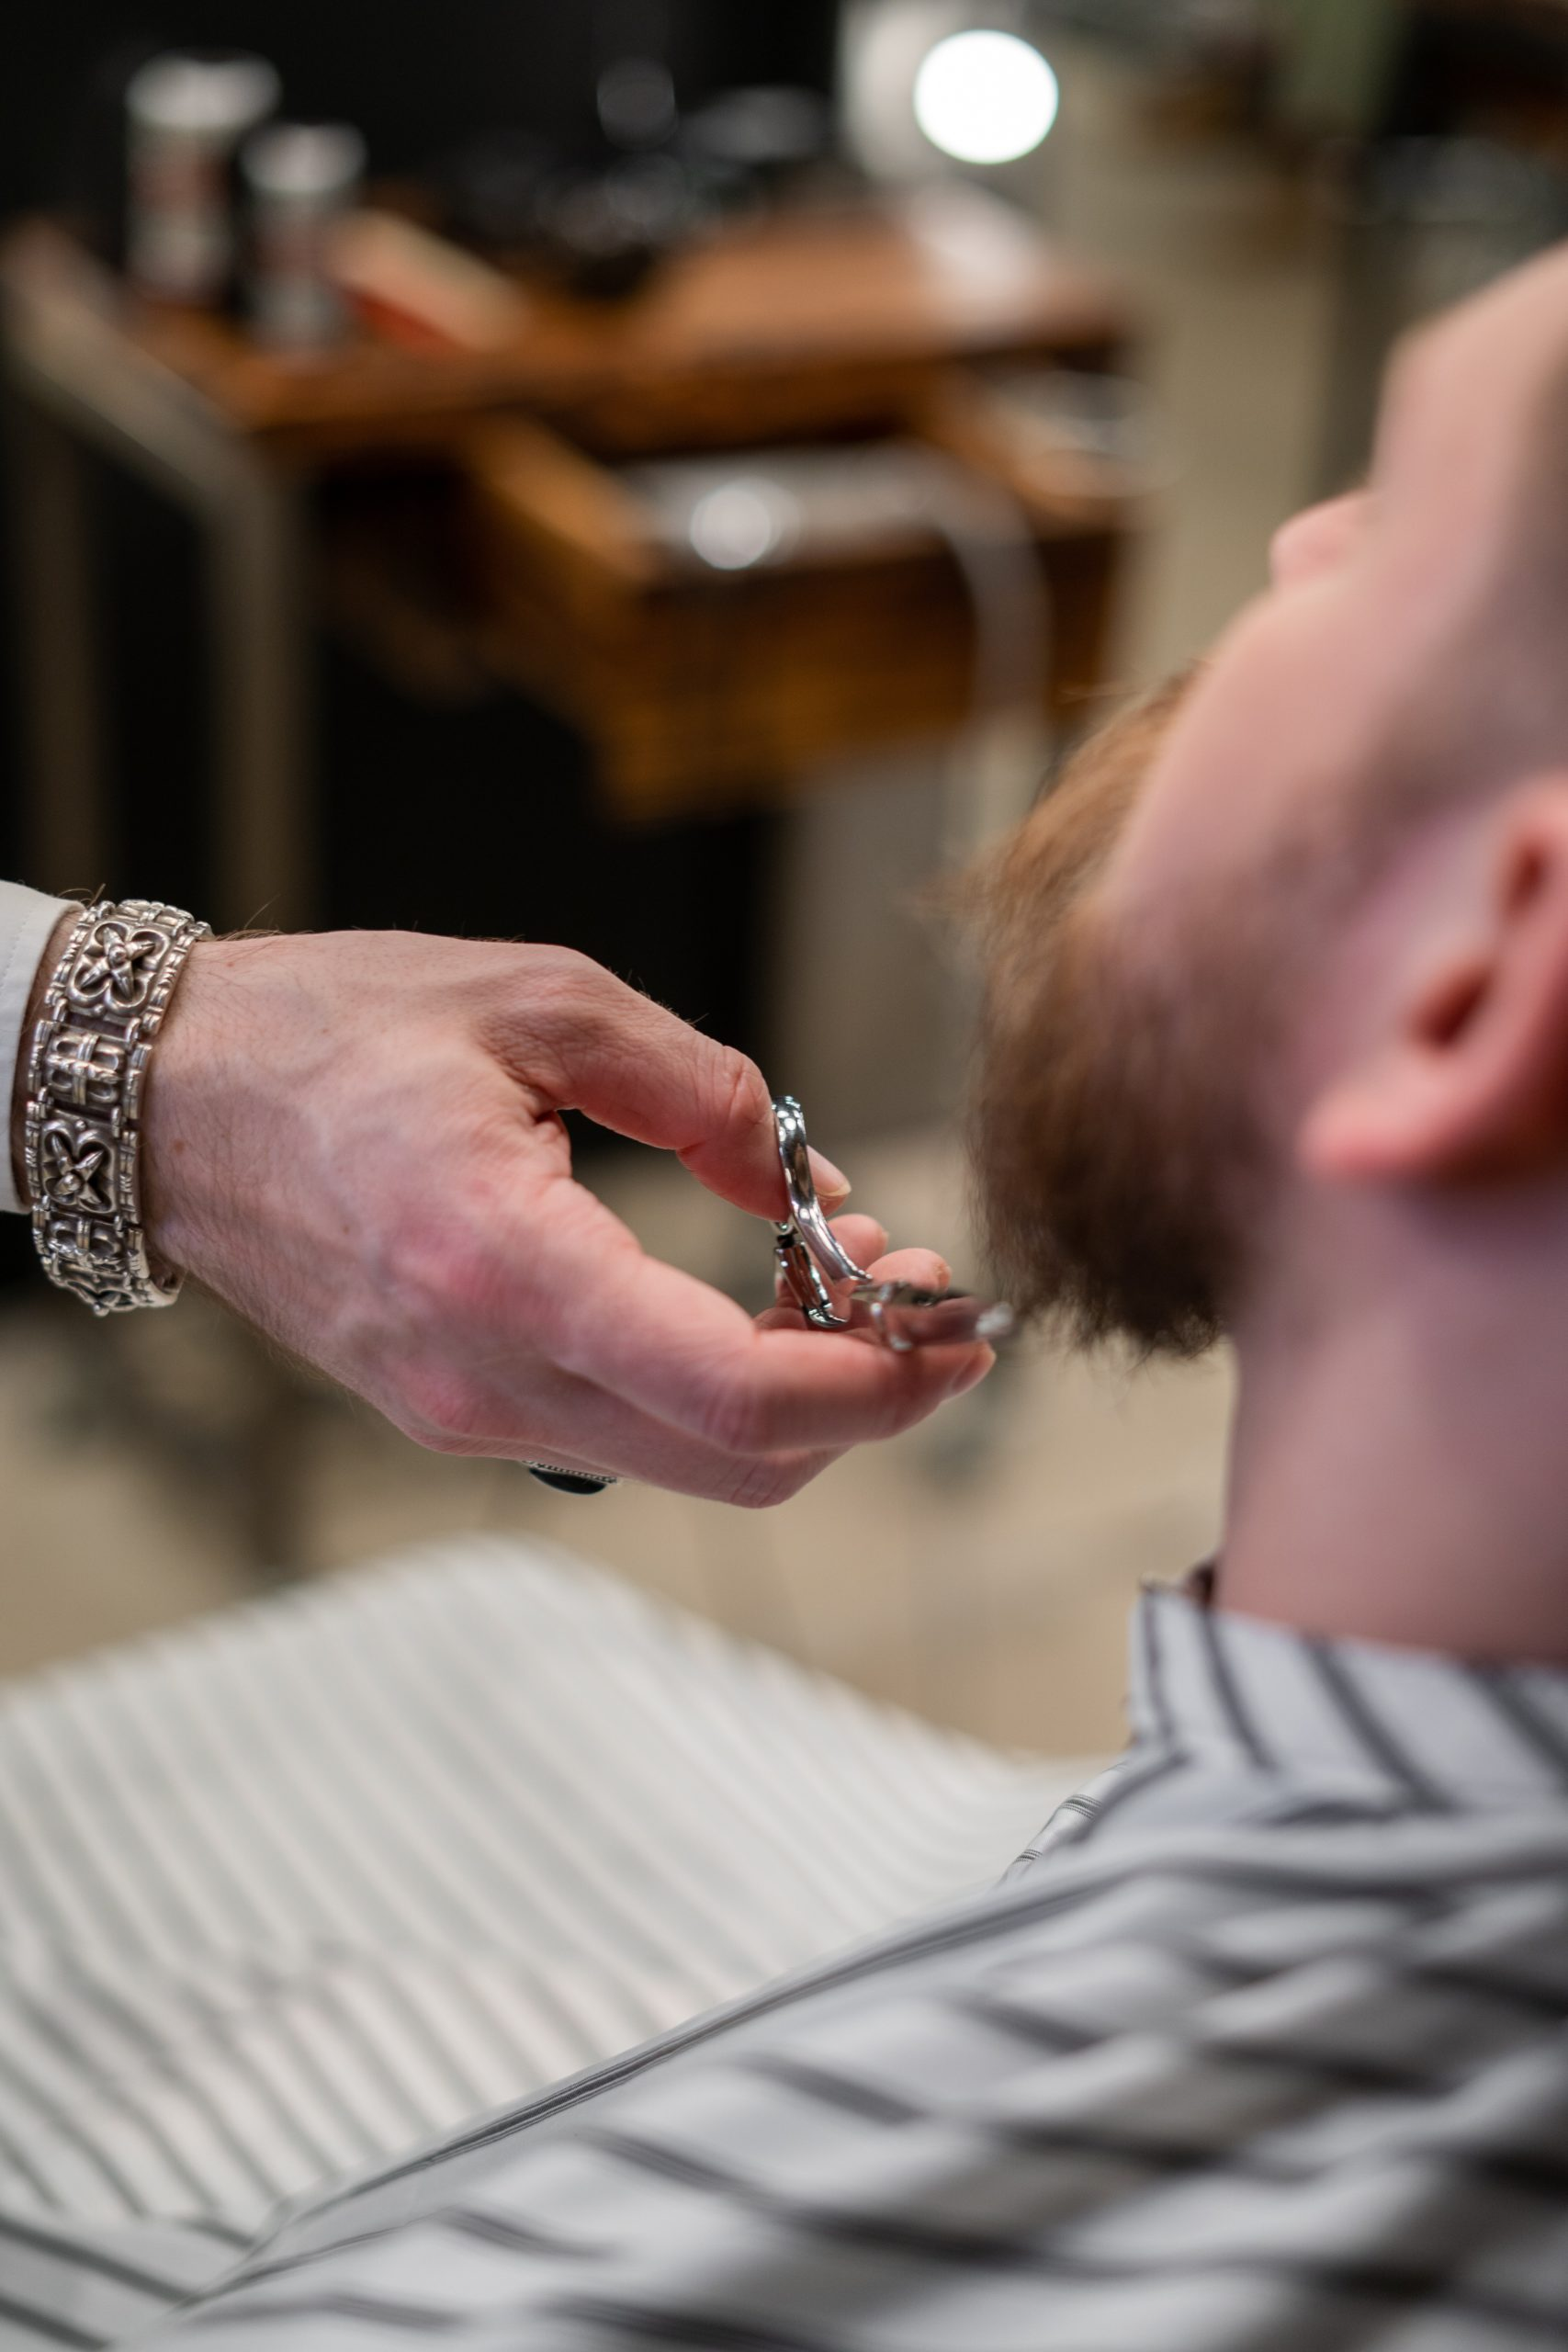 A barber trimming a client's bear with just sheers.